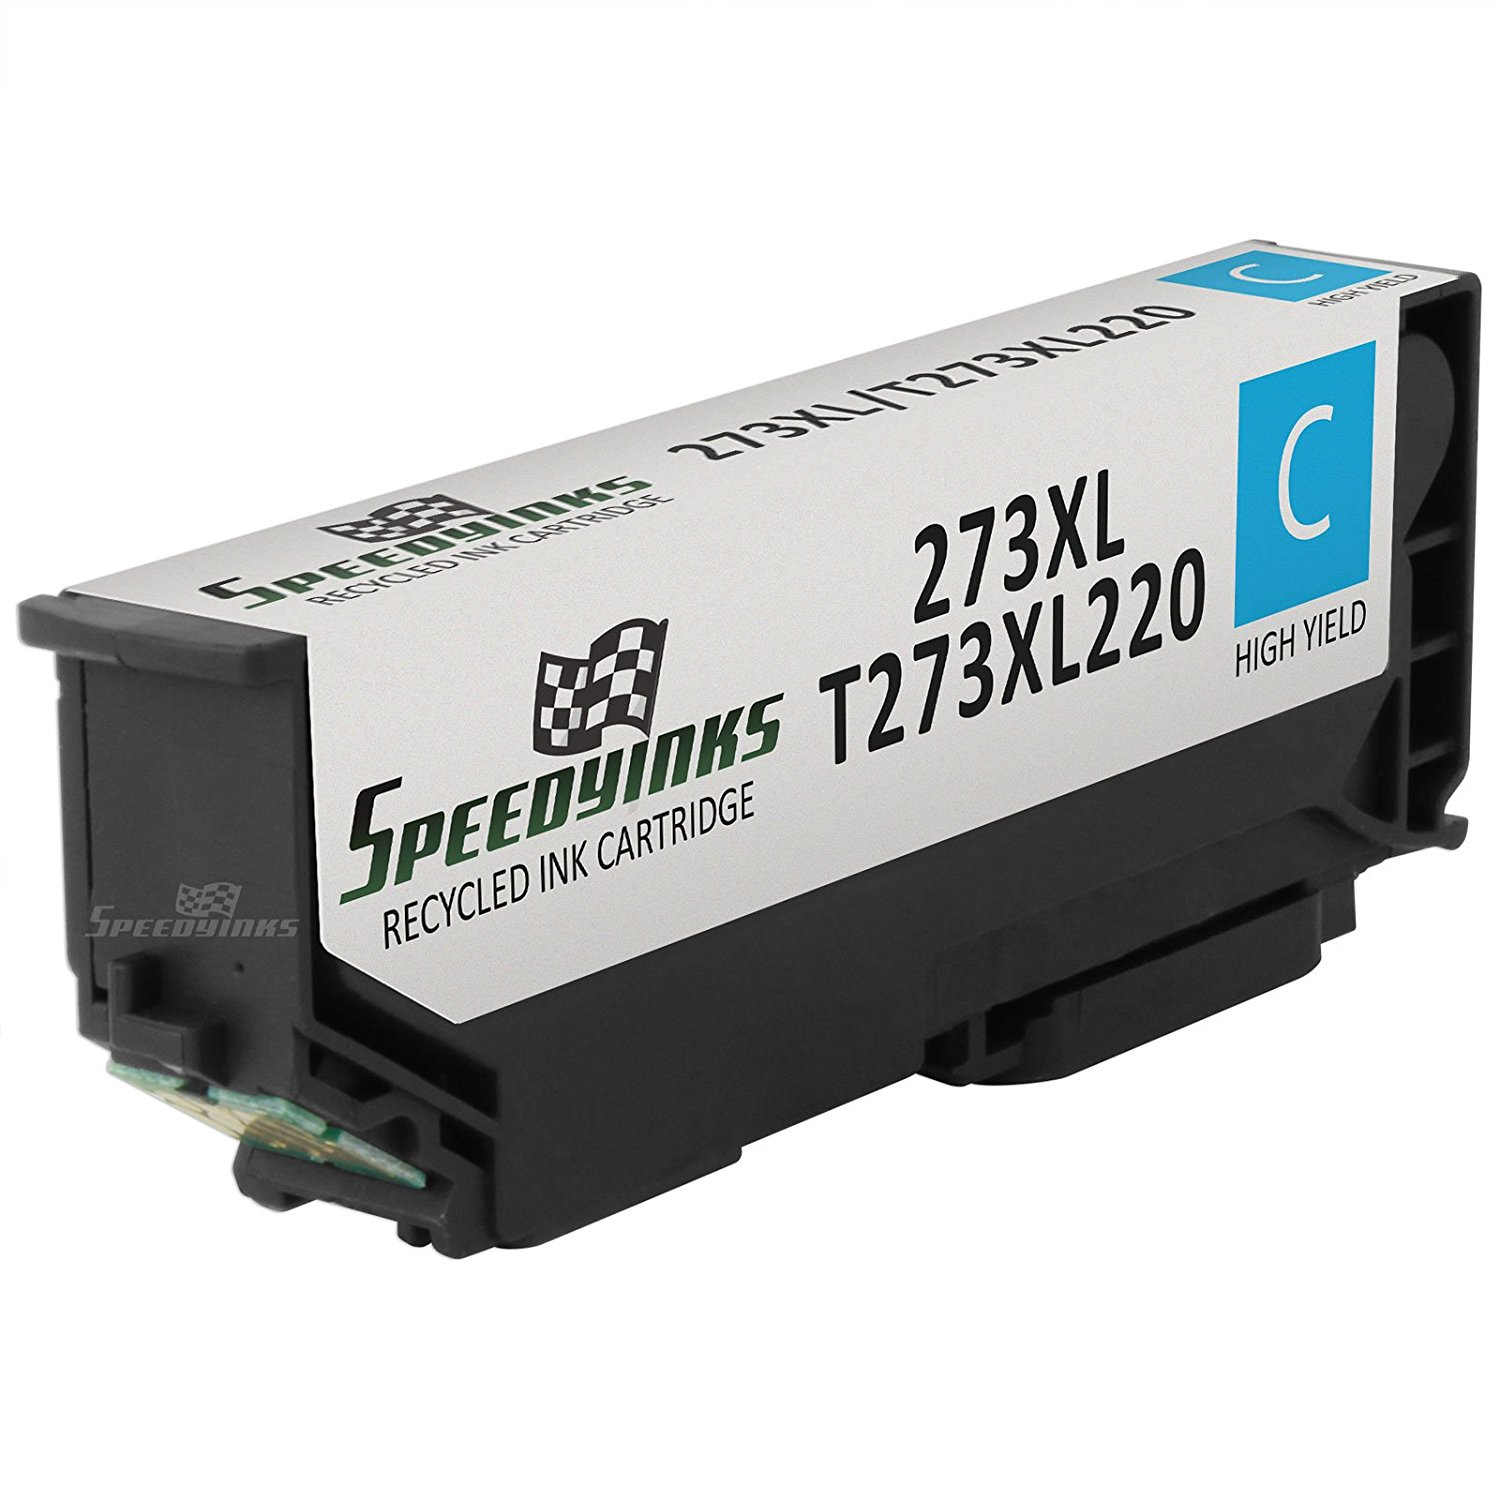 Speedy Inks - Remanufactured High Yield Cyan Ink for Epson T273XL 273XL TT273XL220for use in Epson Expression XP-600 Small-in-One, XP-800 Small-in-One, Premium XP-610 Small-in-One, Premium XP-810 Small-in-One, Premium XP-520 Small-in-One, Premium XP-620 Small-in-One, Premium XP-820 Small-in-One